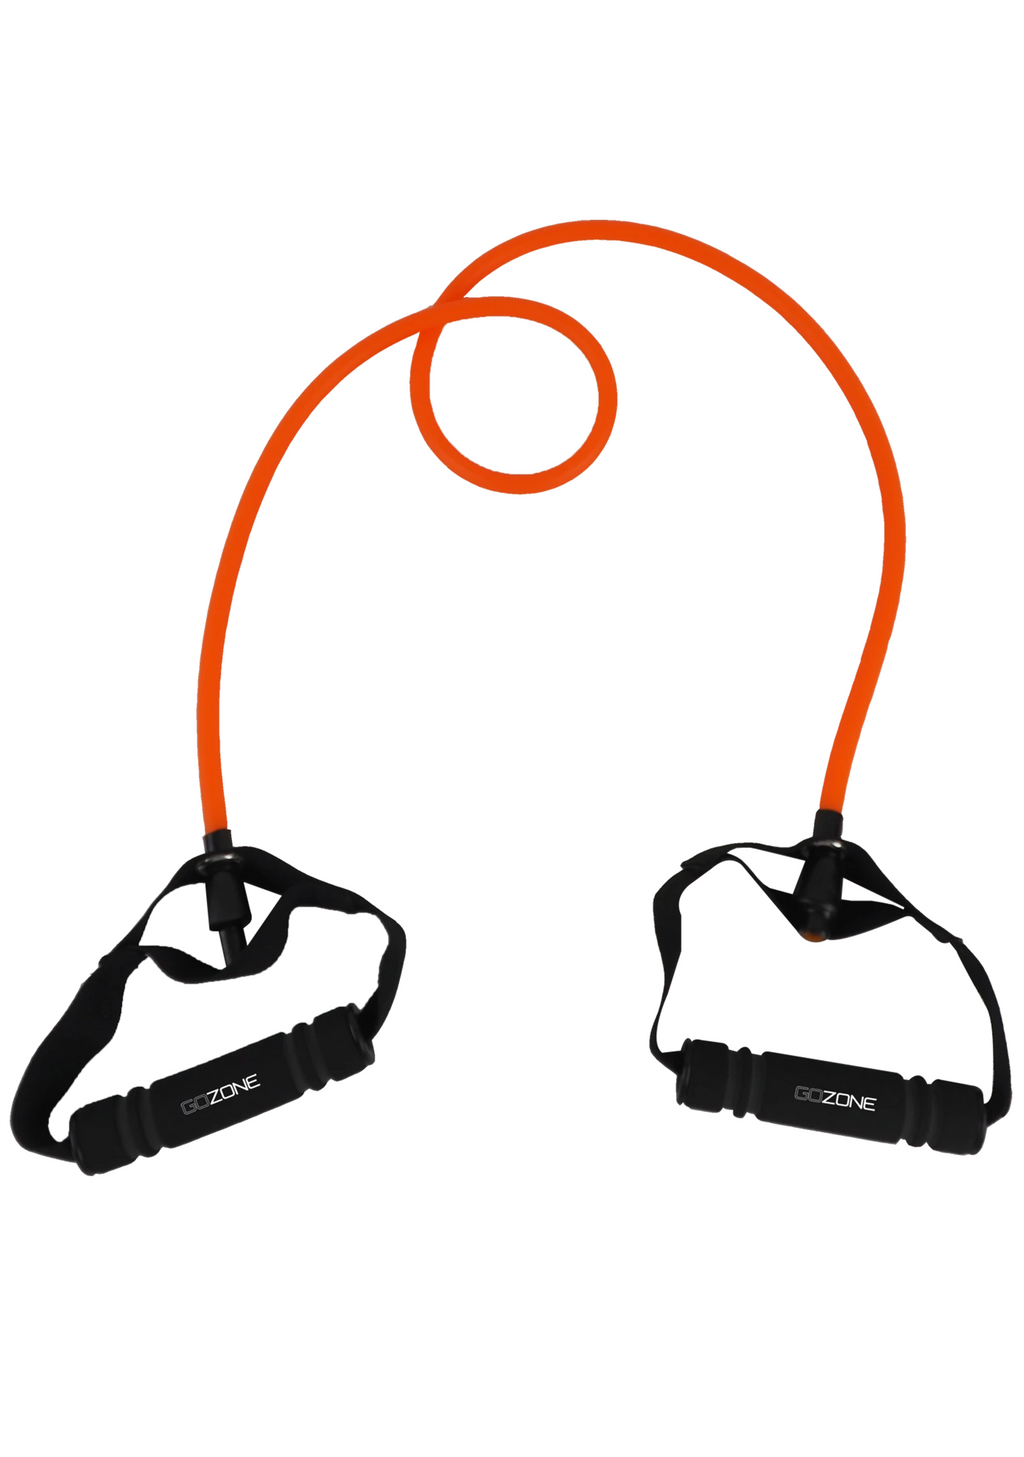 GOZONE MEDIUM RESISTANCE BANDS <br> GZE2066